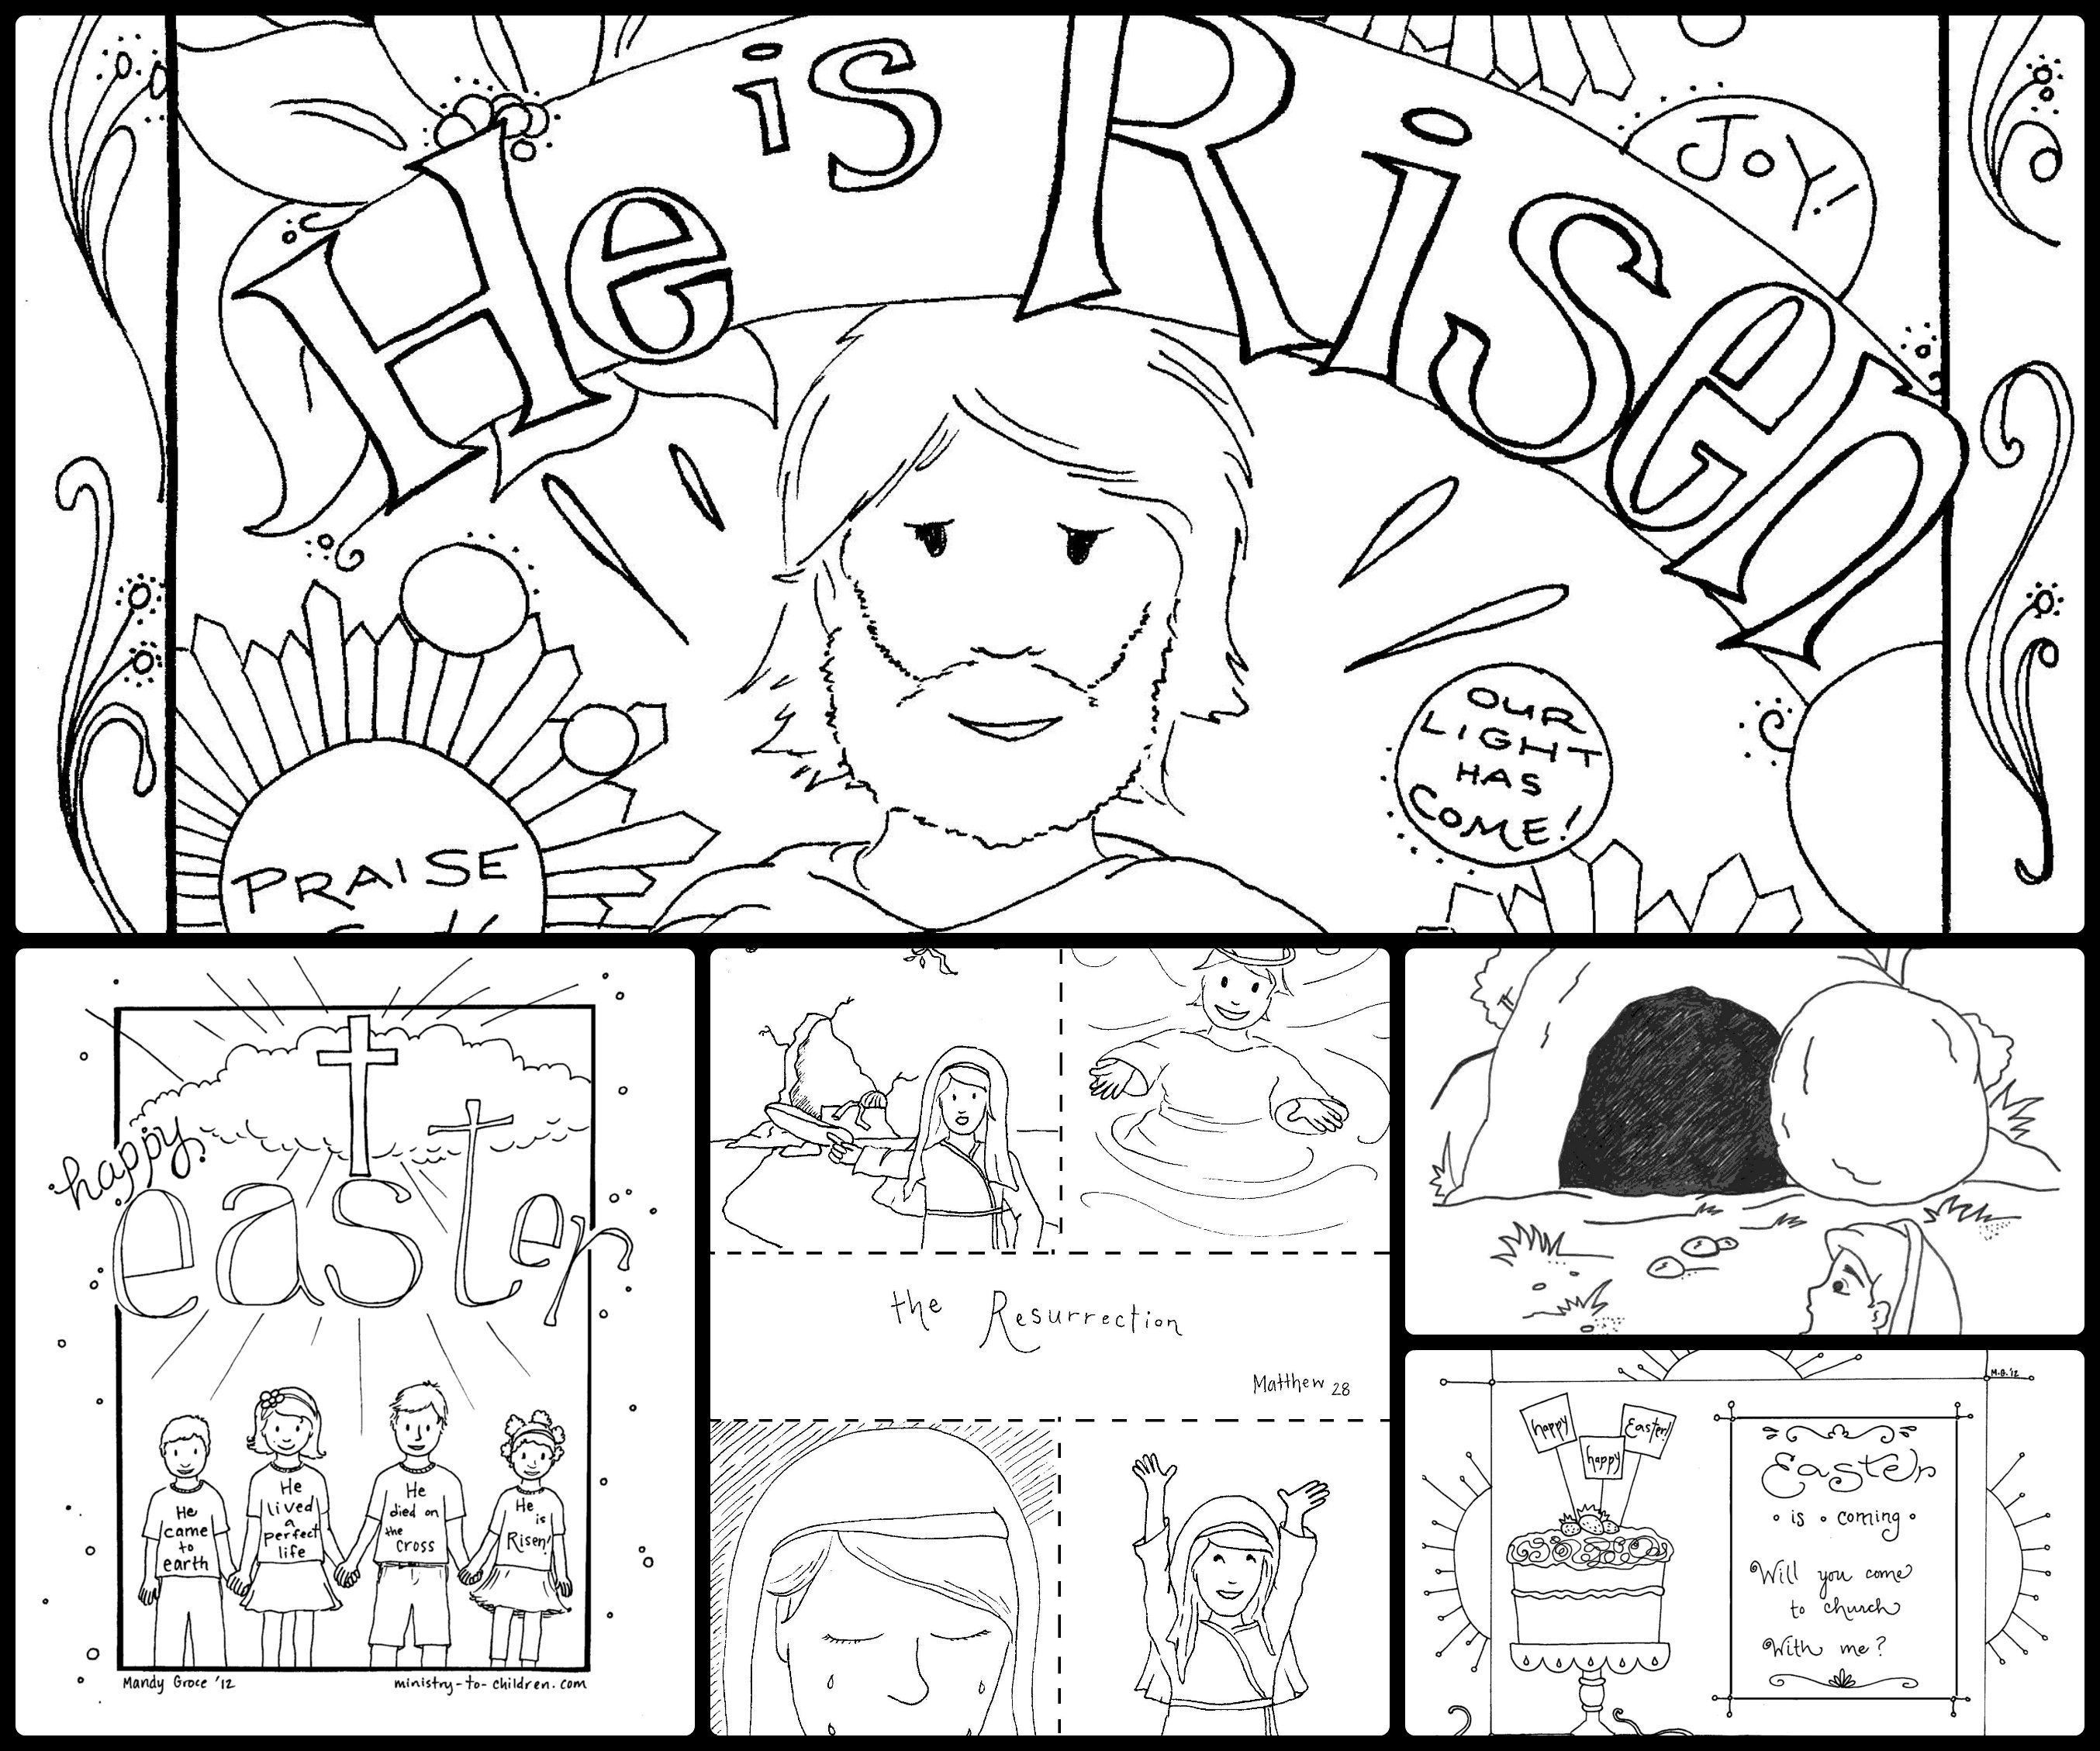 Jesus Resurrection Coloring Pages To Print Free Coloring Sheets - Jesus-is-risen-coloring-page